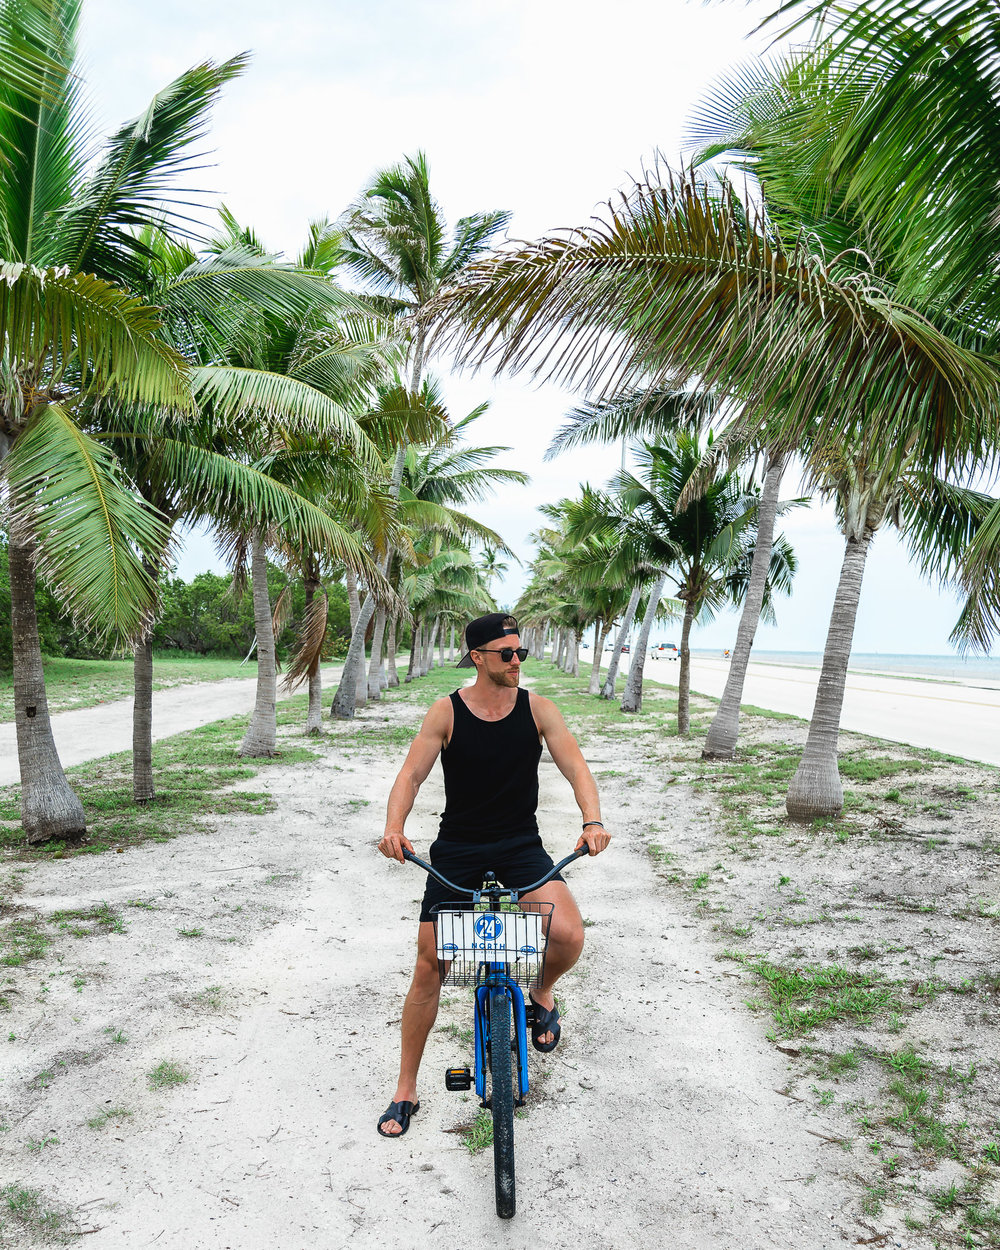 24 north hotel key west bike smathers beach